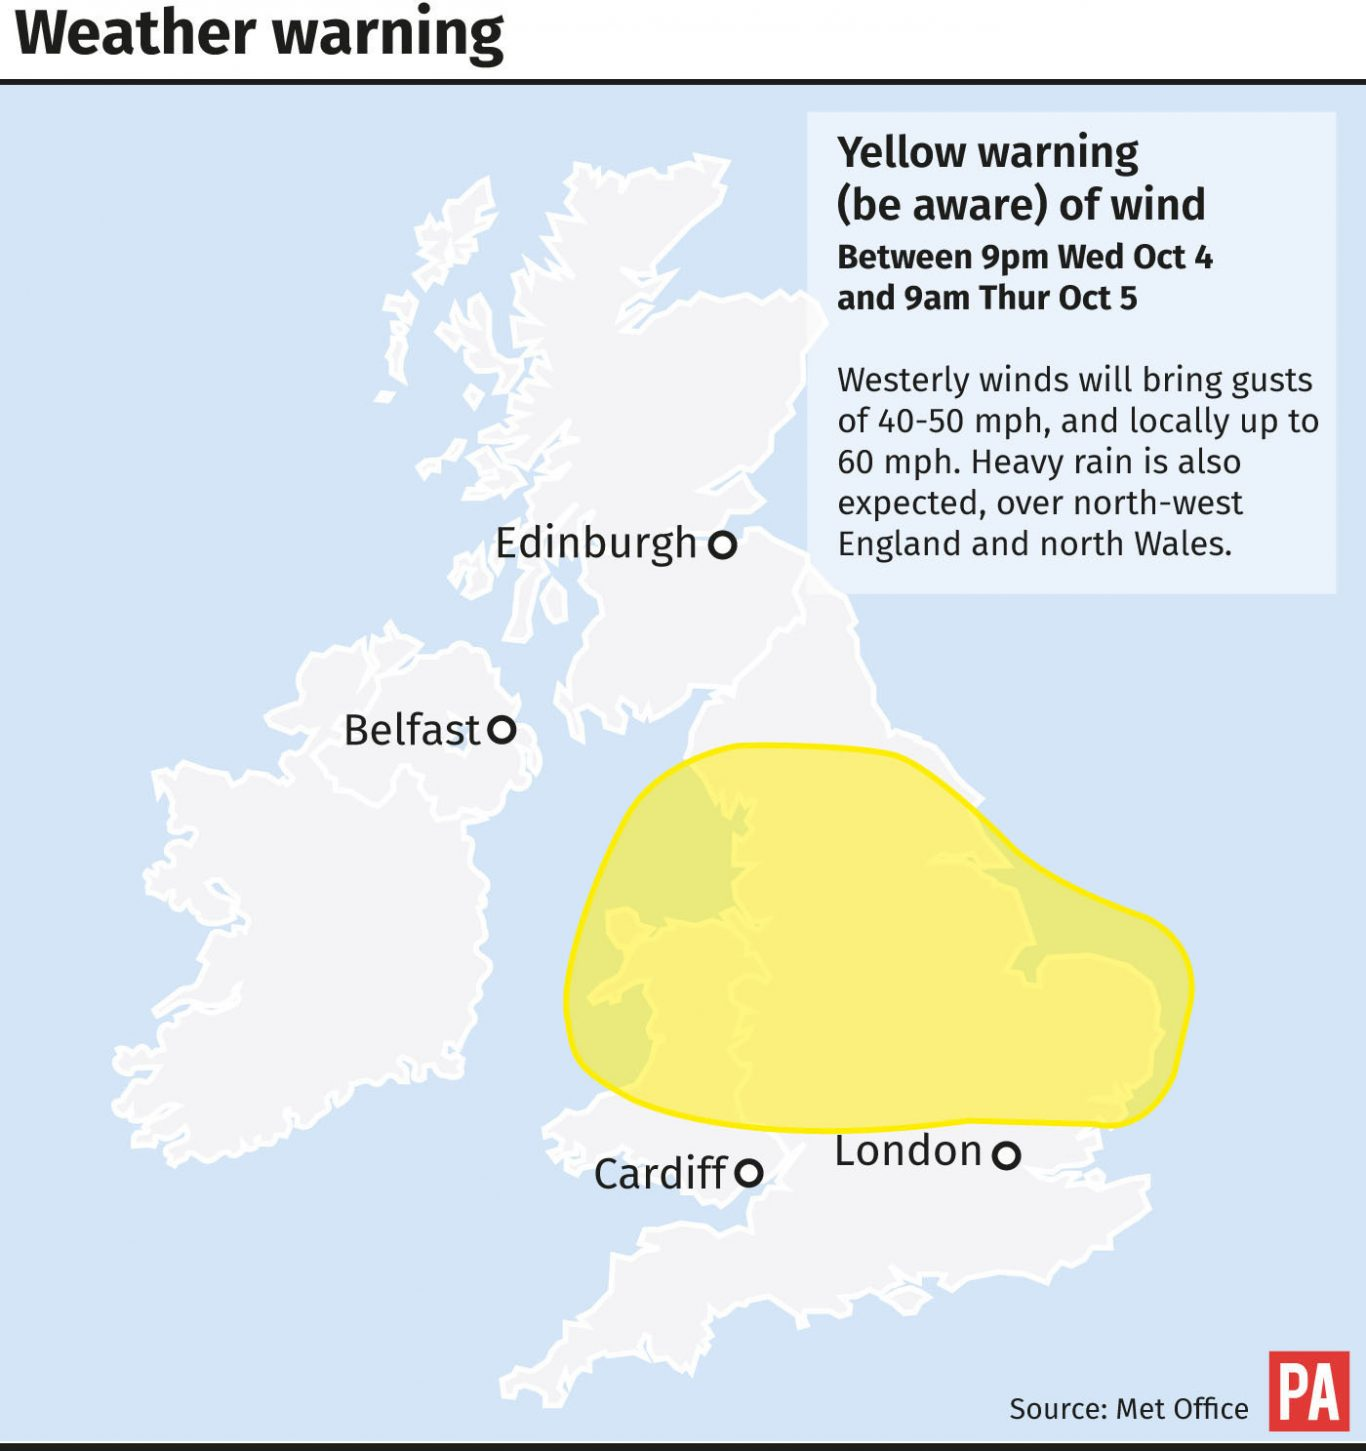 Weather warning issued by the Met Office for wind